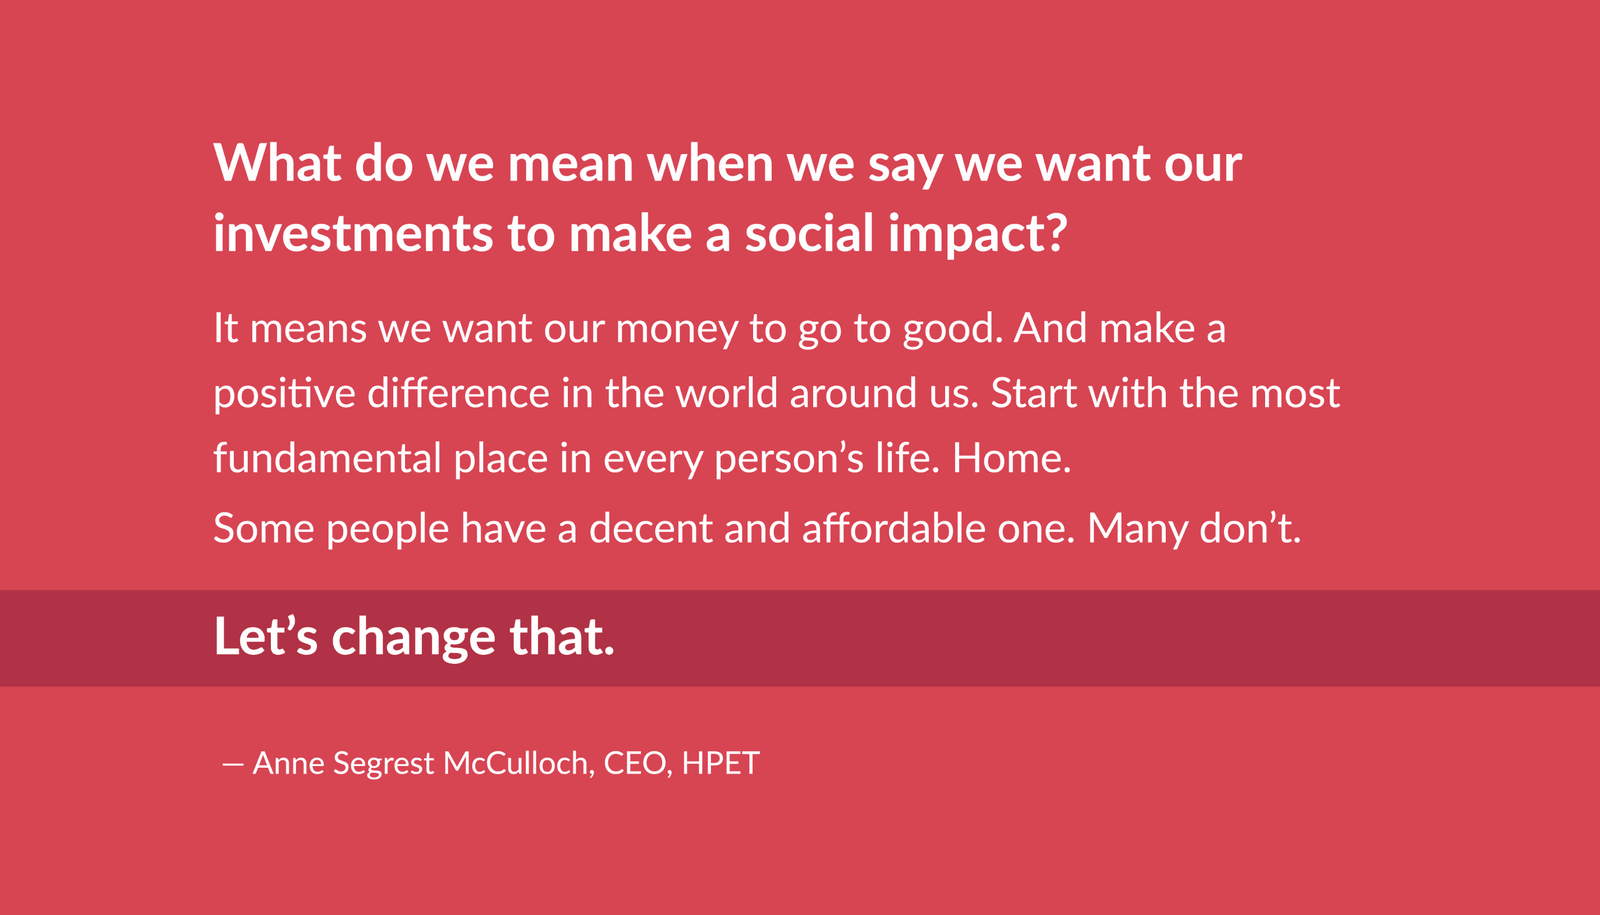 A quote from HPET's CEO